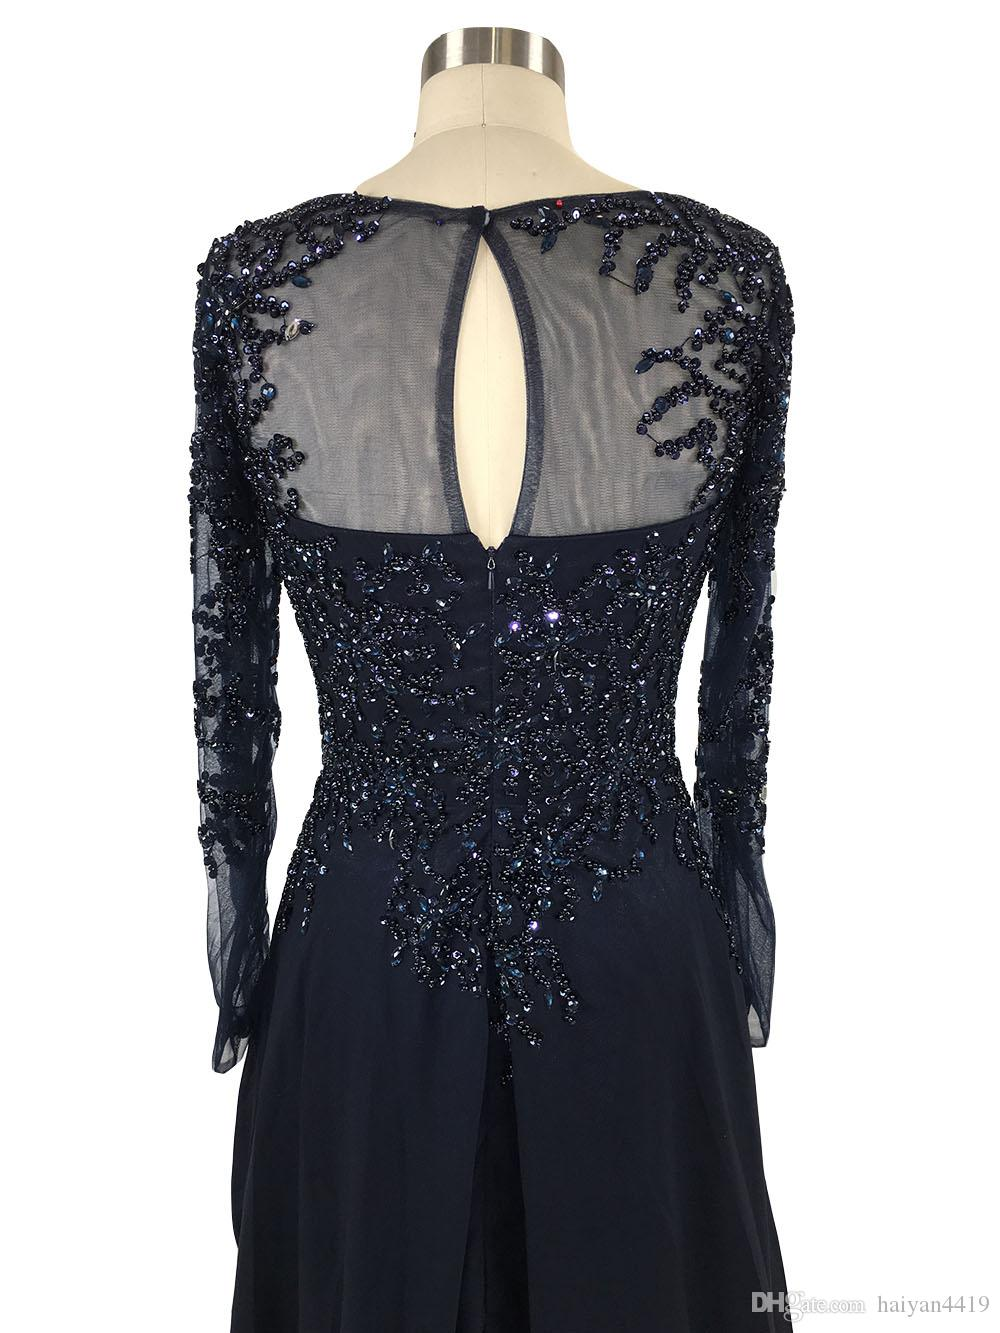 2020 New Sexy Navy Blue Mother Of Bride Dresses Long Sleeves Lace Appliques Cryystal Beads Floor Length Chiffon Bride Wedding Guest Dreses